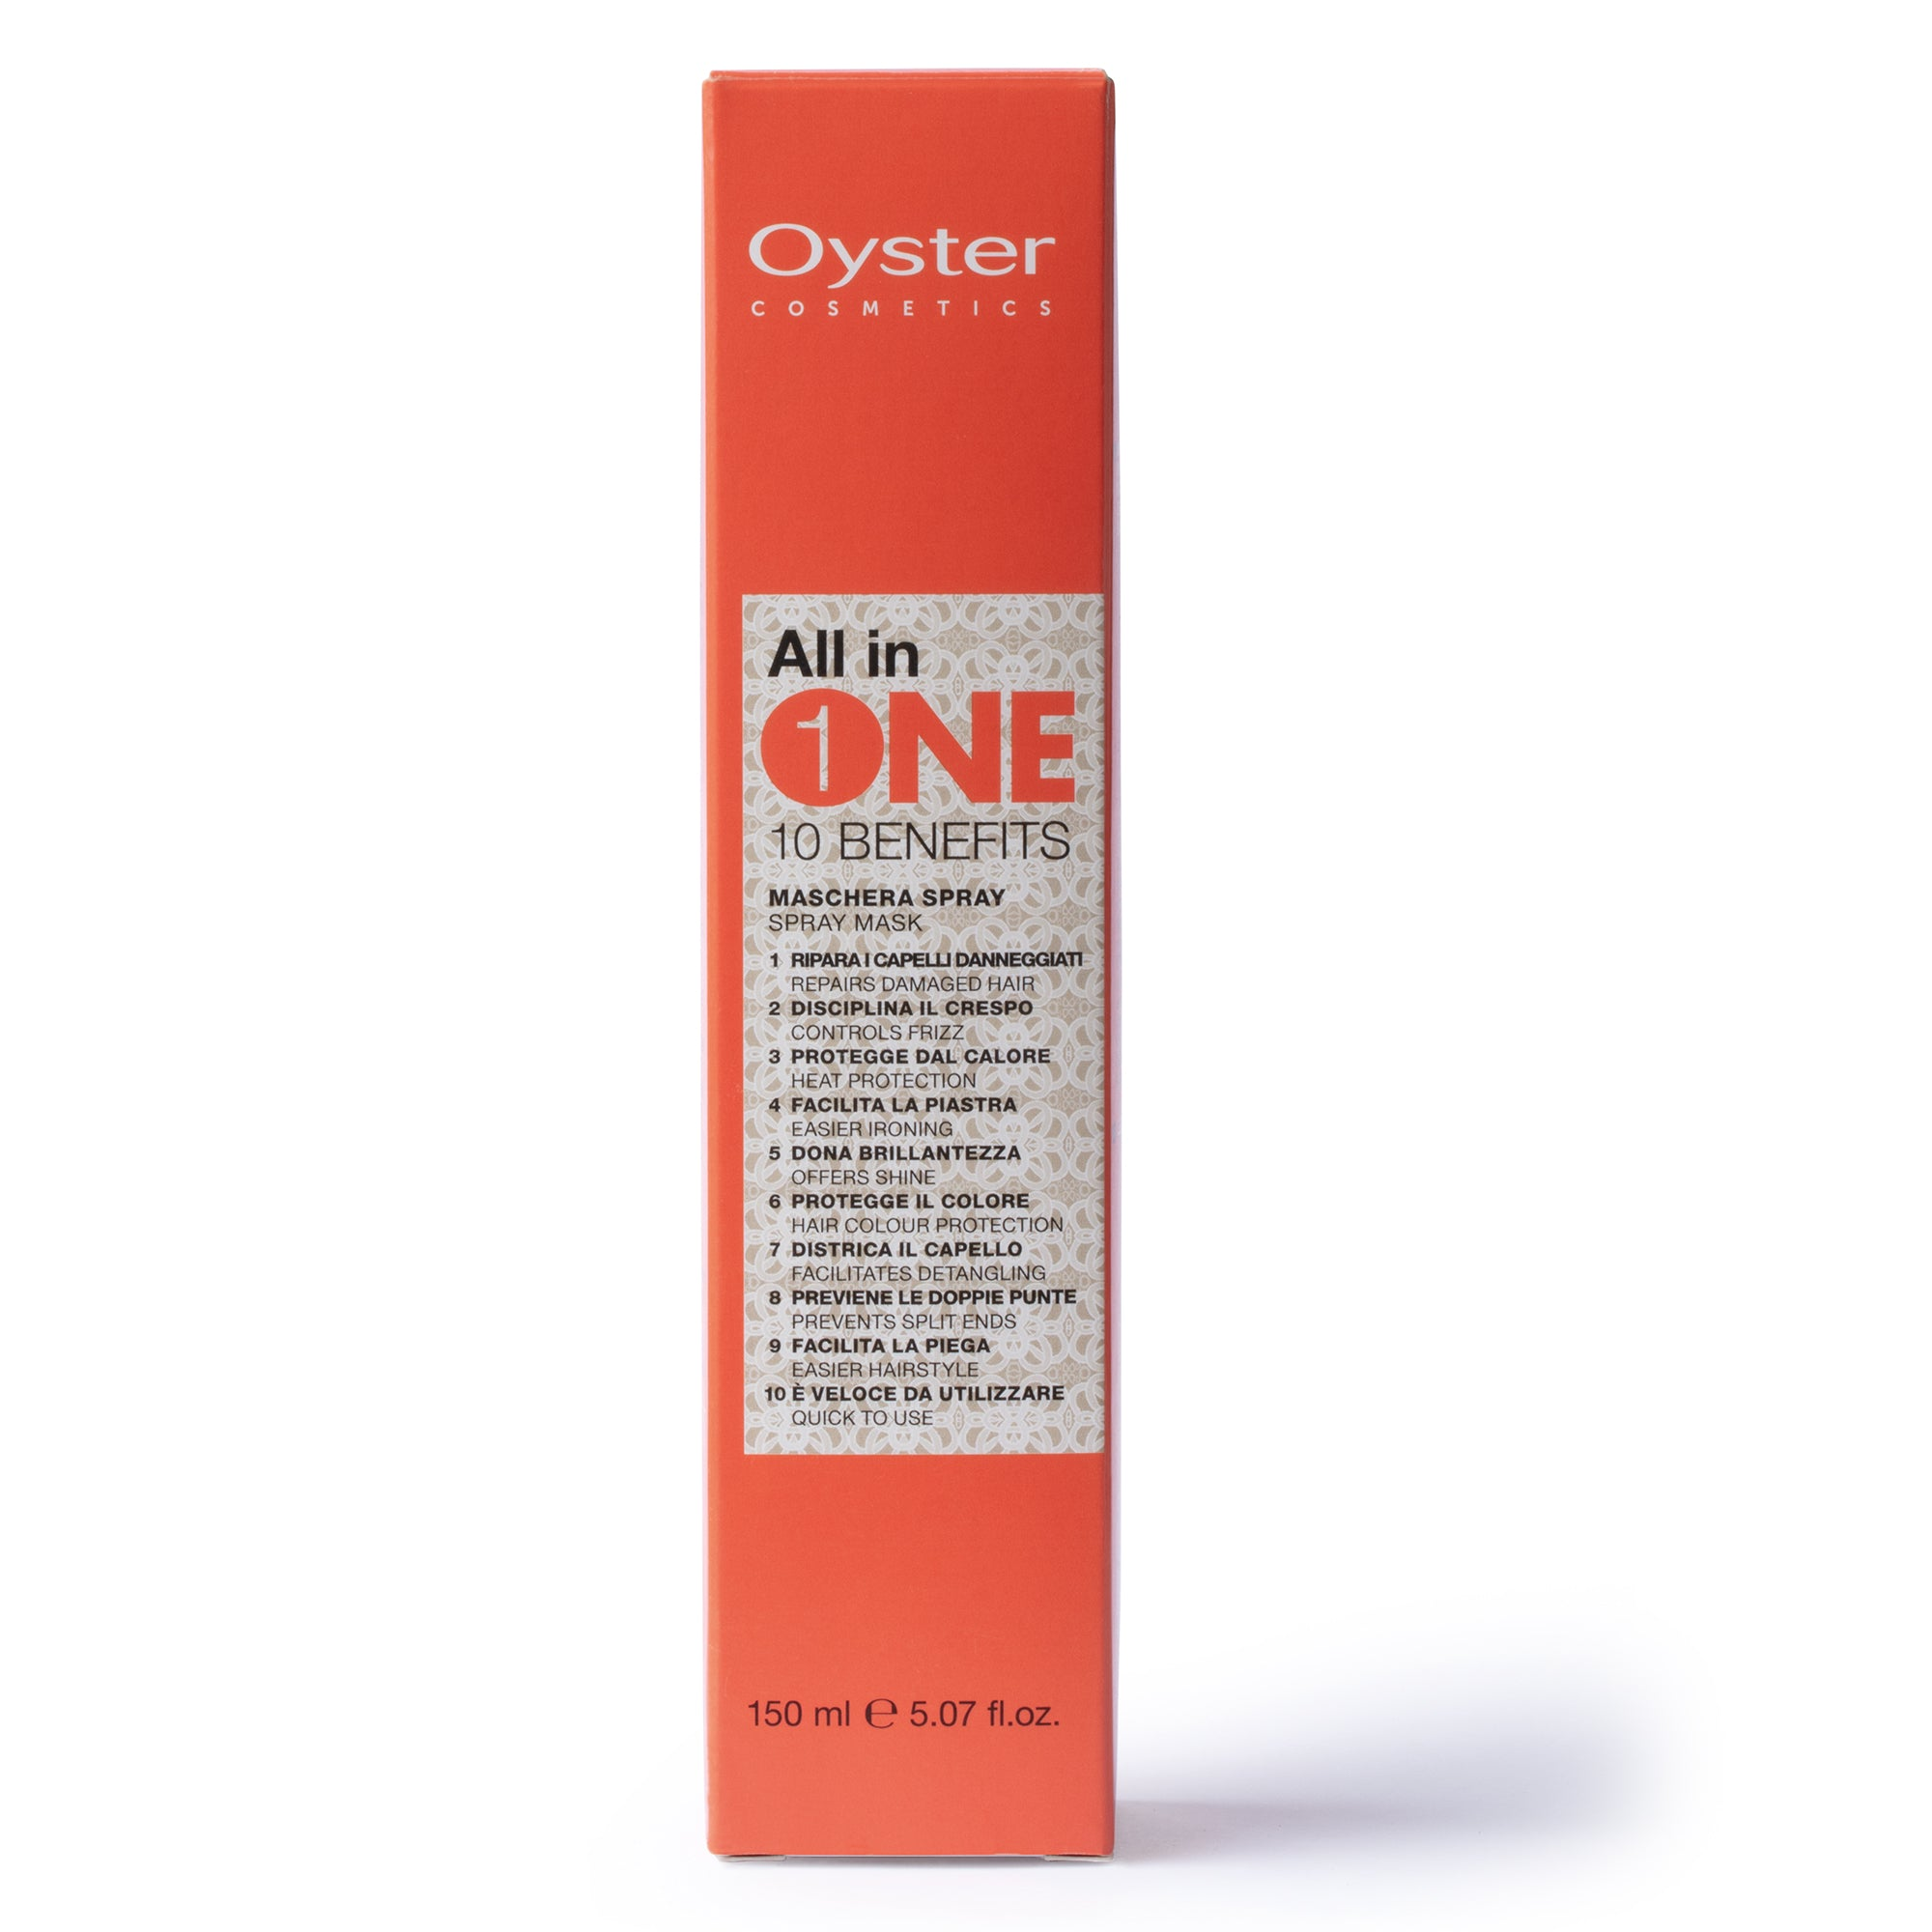 ALL-IN-ONE | OYSTER | SHSalons.com